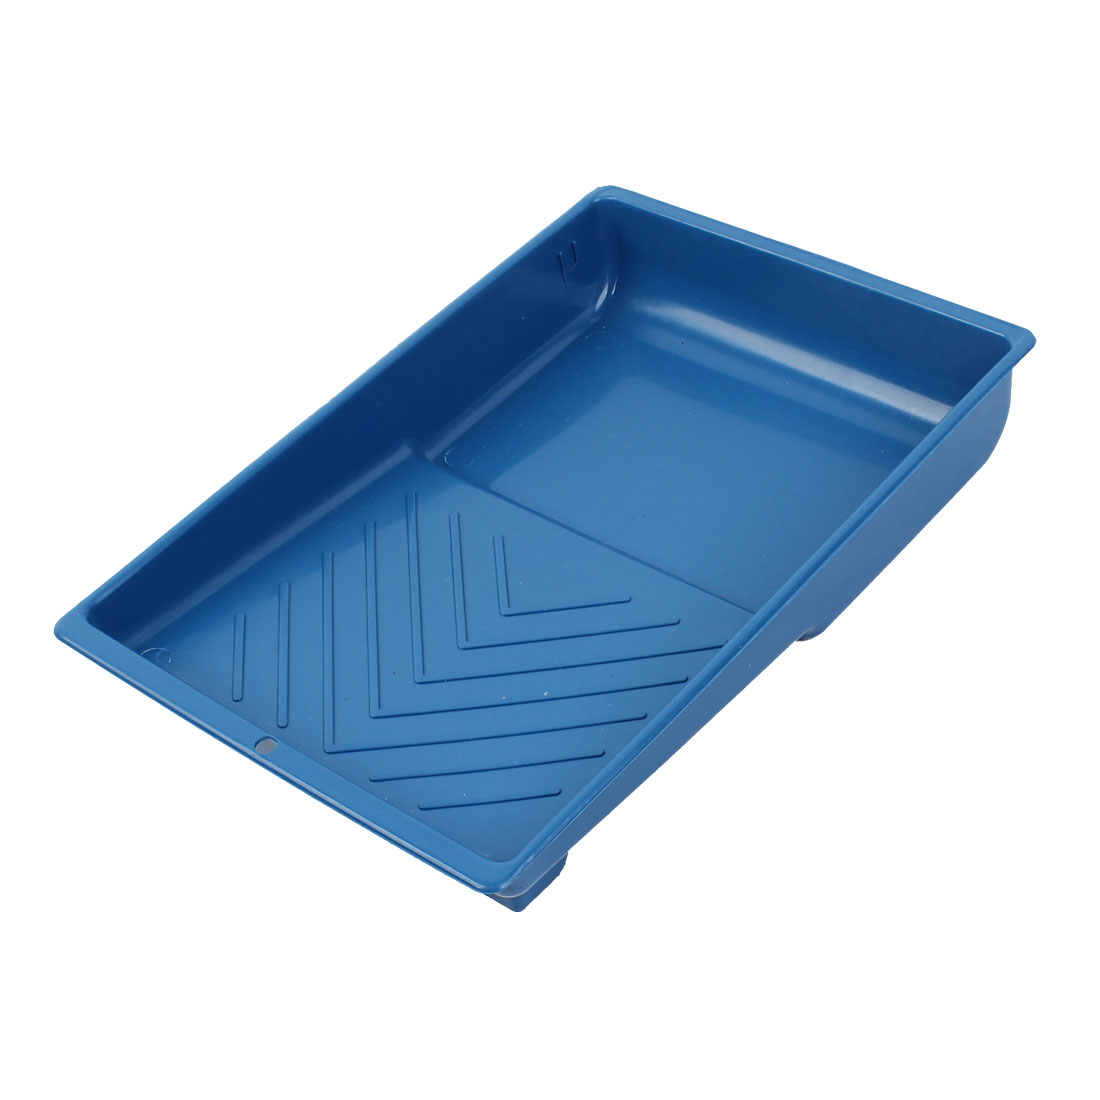 "Blue Plastic Painting Decorating 7"" Roller Tray Paint Holder"